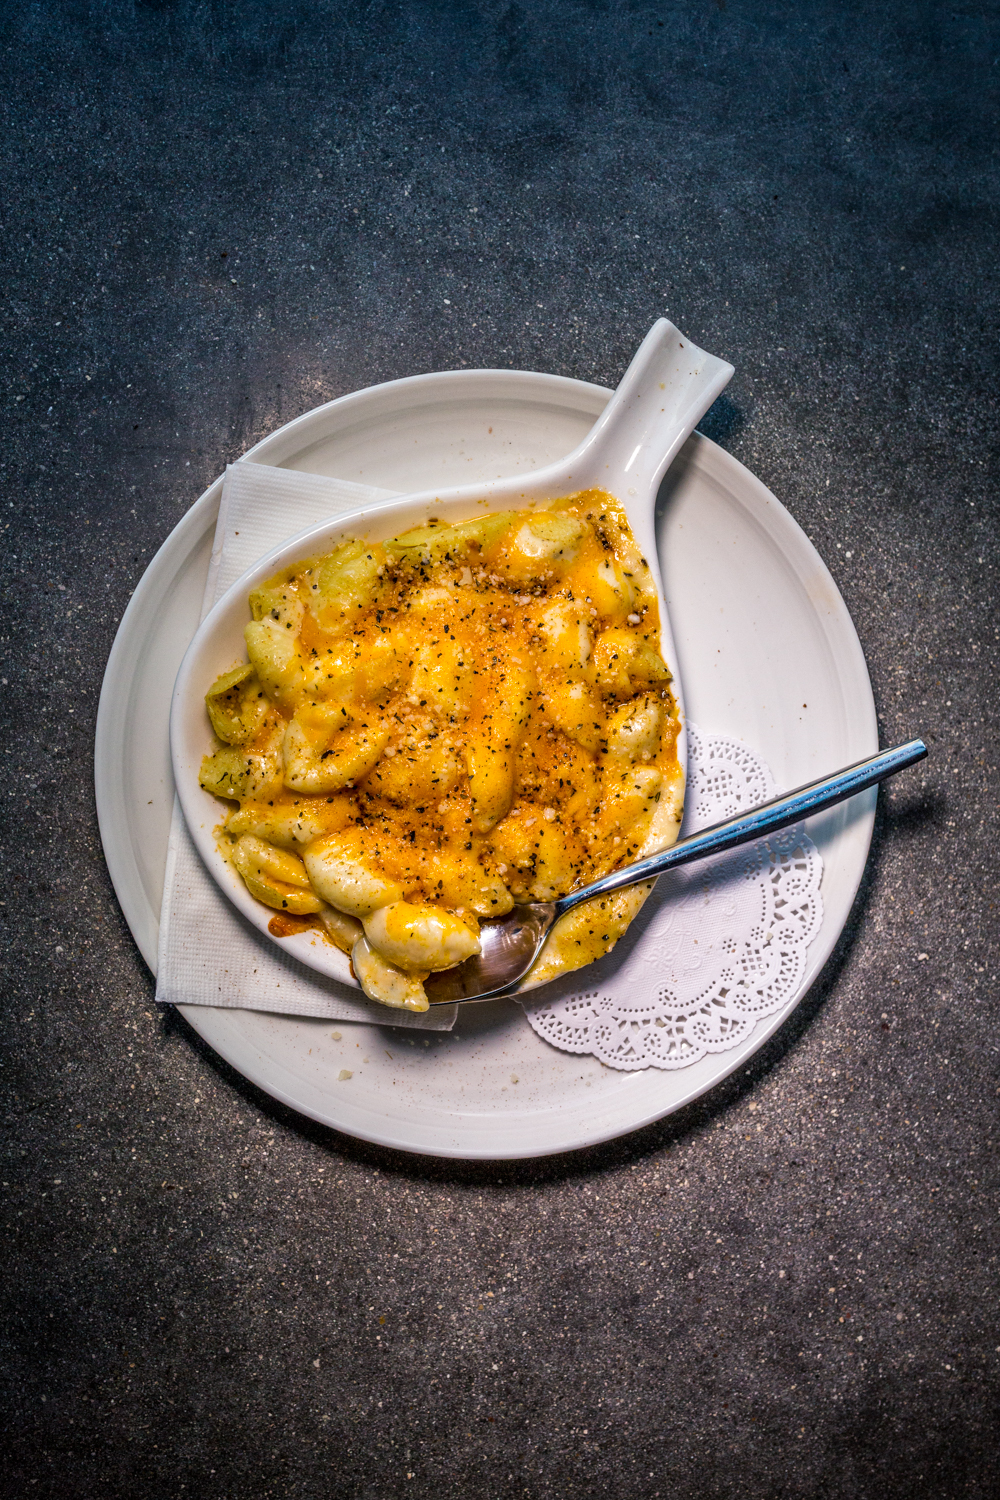 Mac & cheese / Image: Catherine Viox // Published: 10.10.19